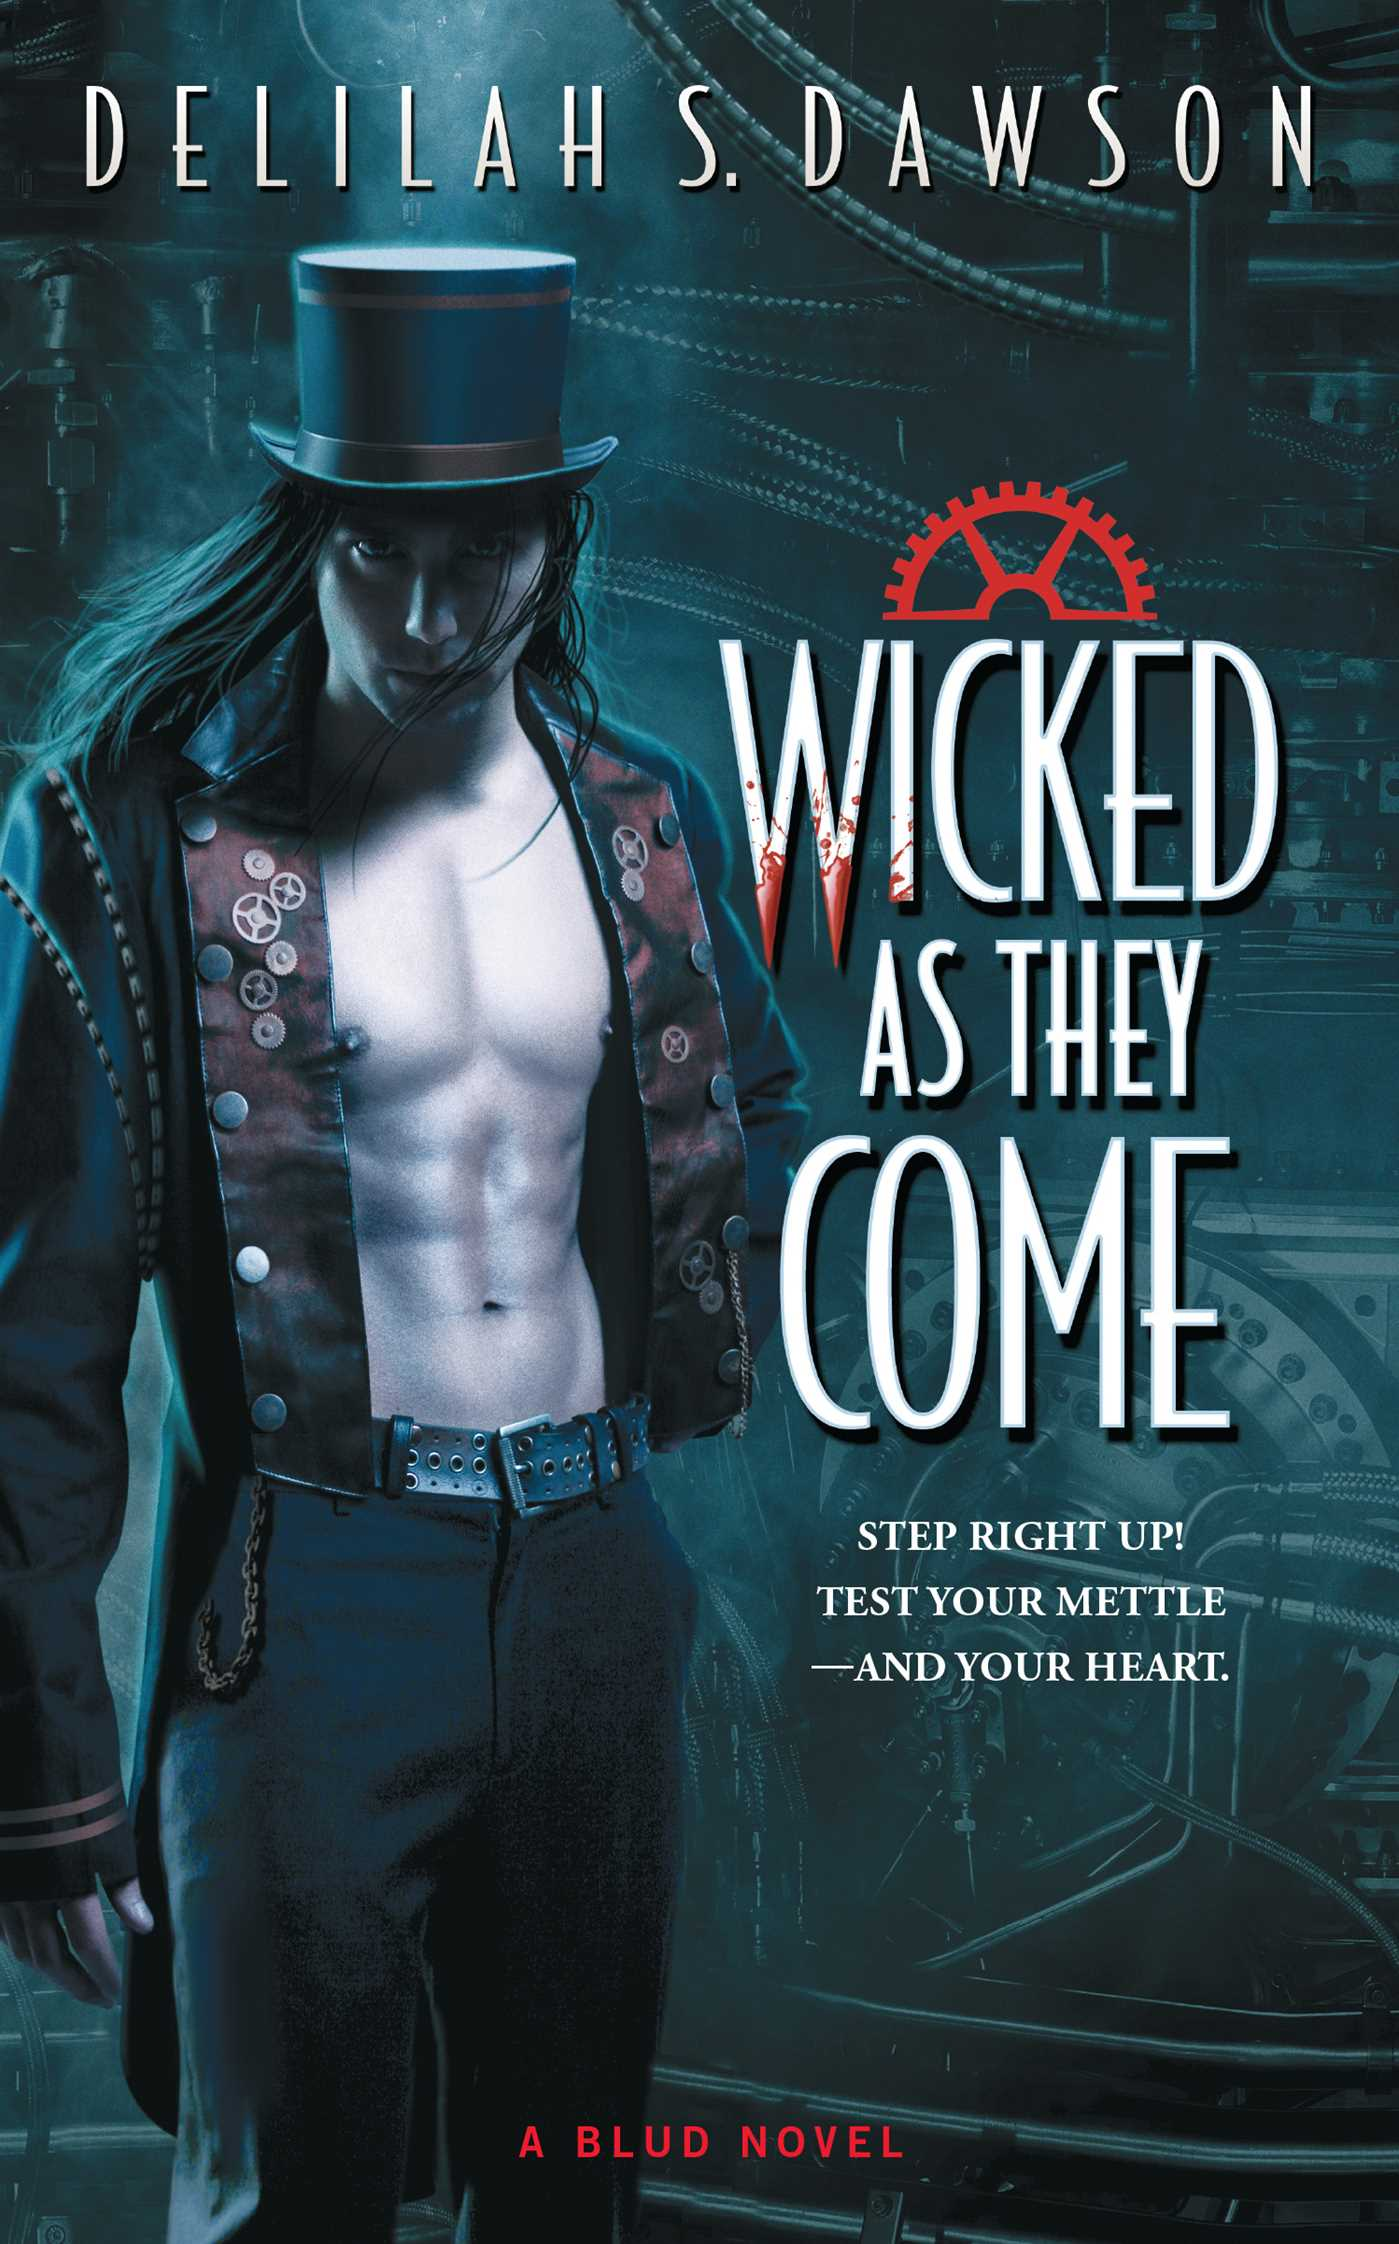 Wicked-as-they-come-9781451657890_hr